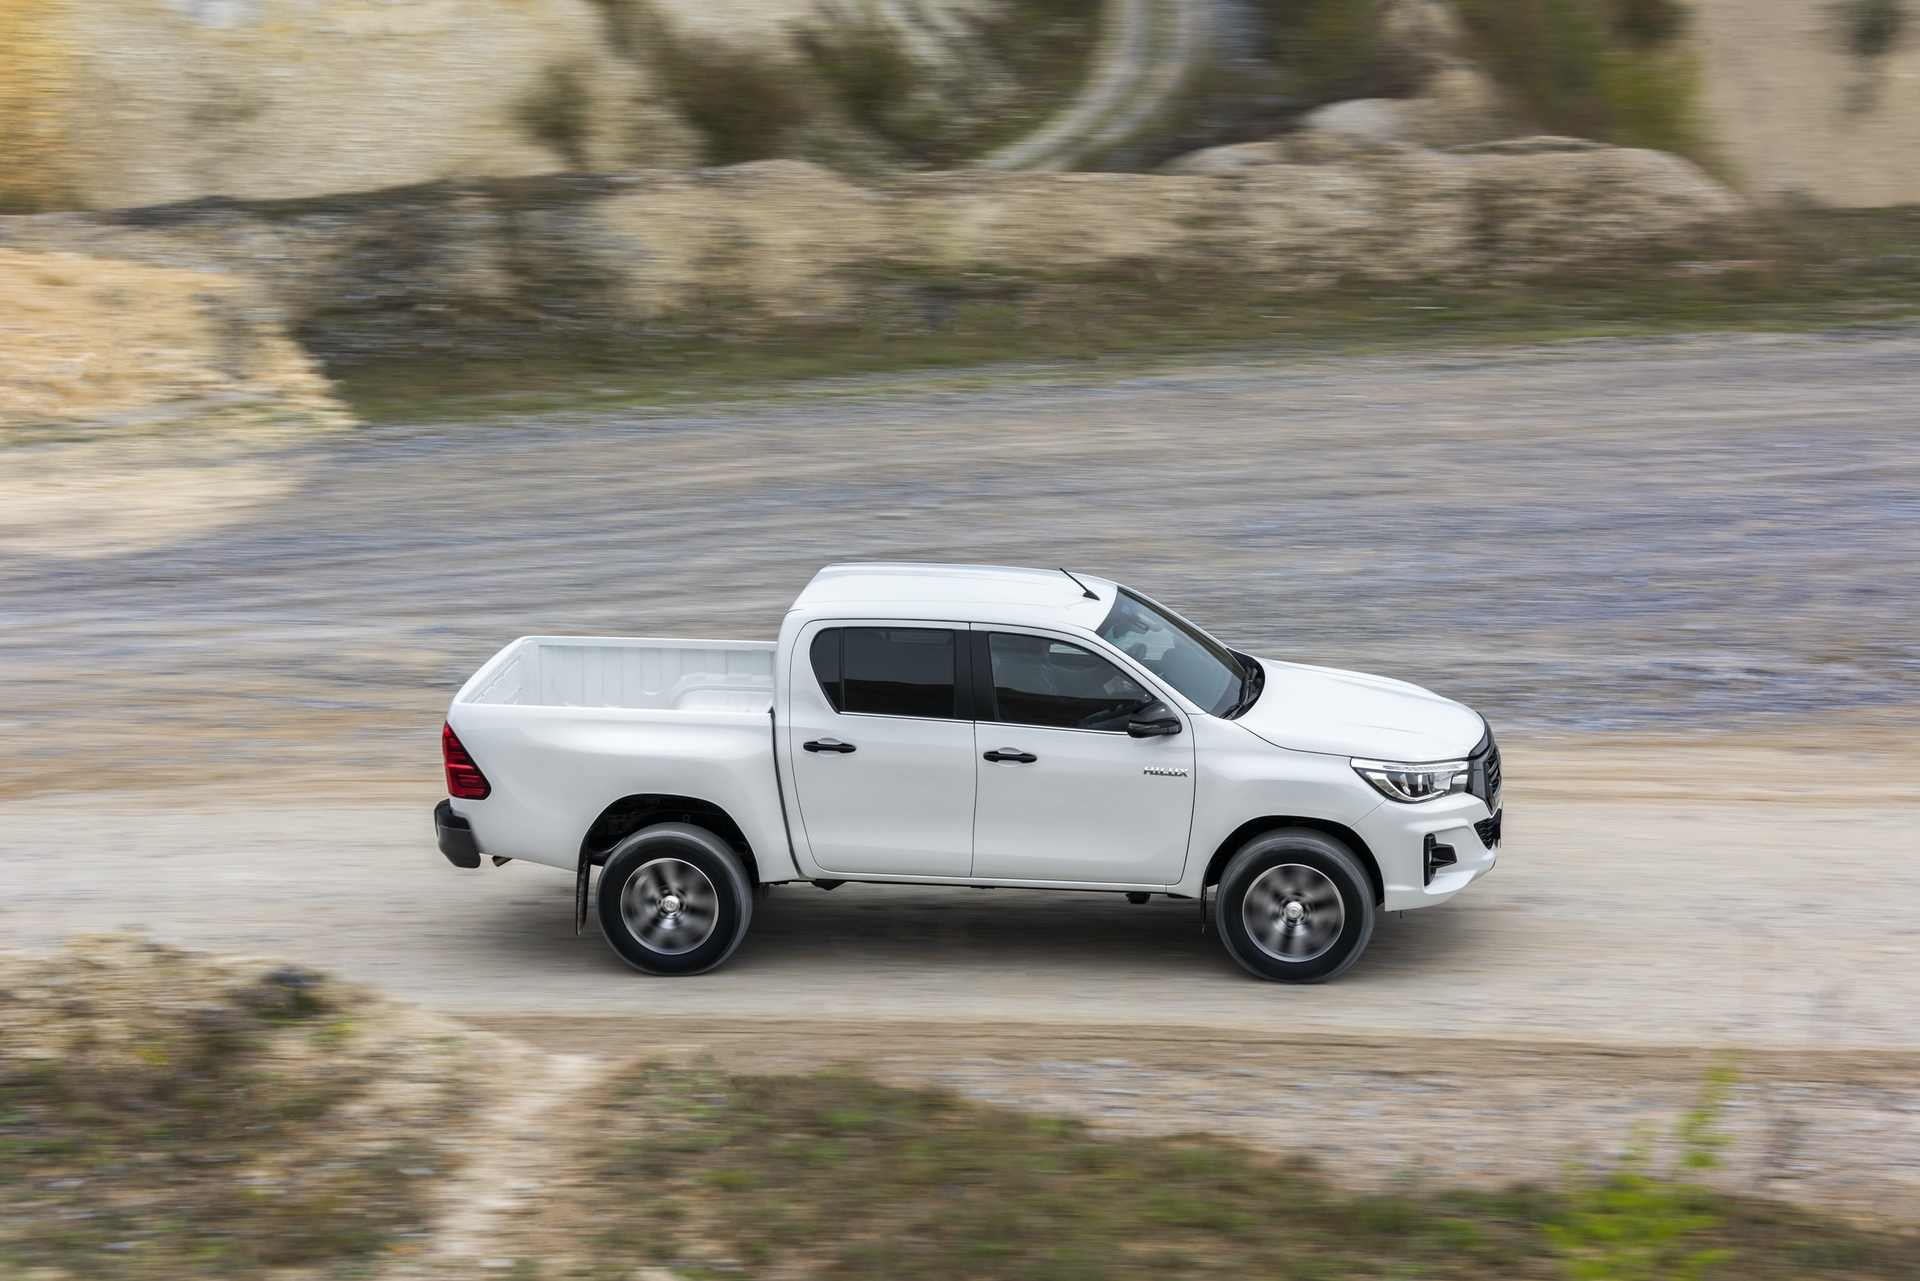 Toyota_Hilux_Special_Edition_0069